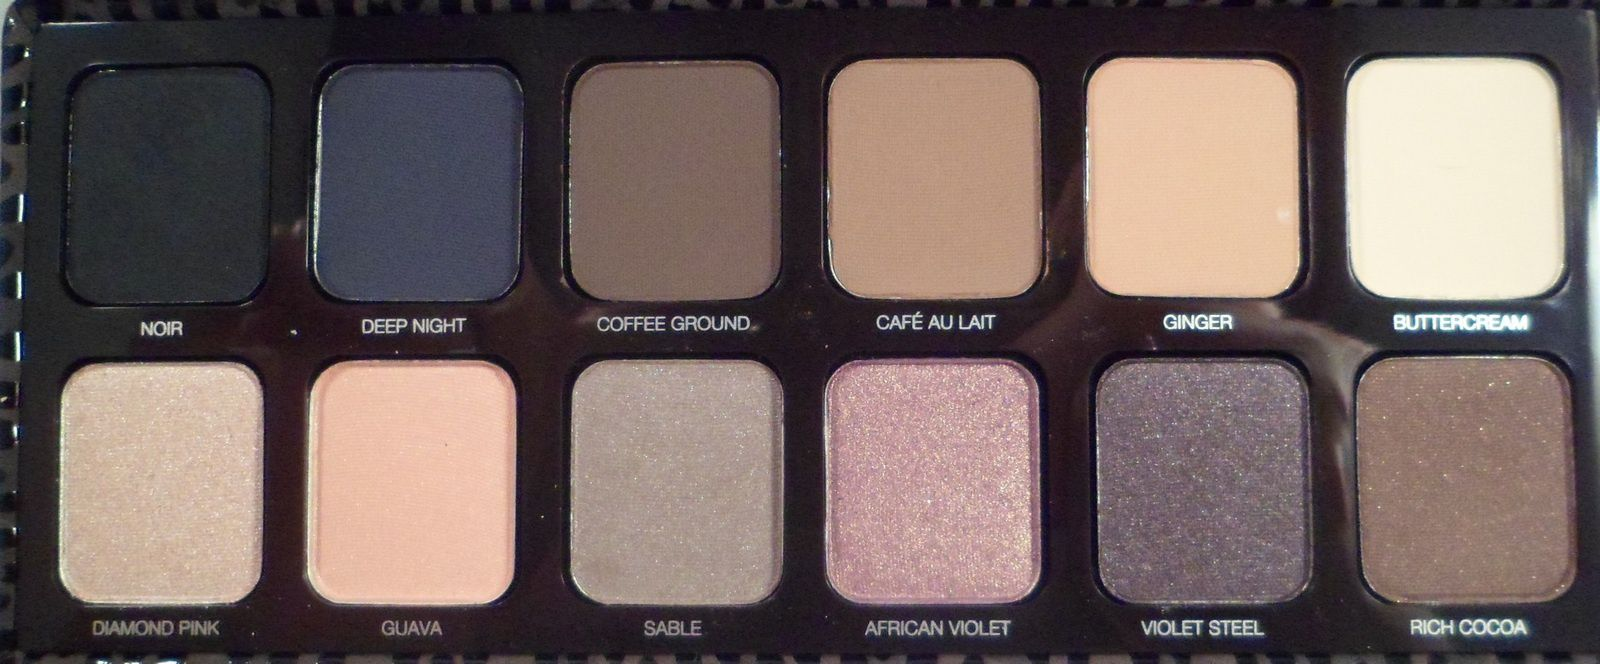 Palette Artiste 3 de Laura Mercier : un must have